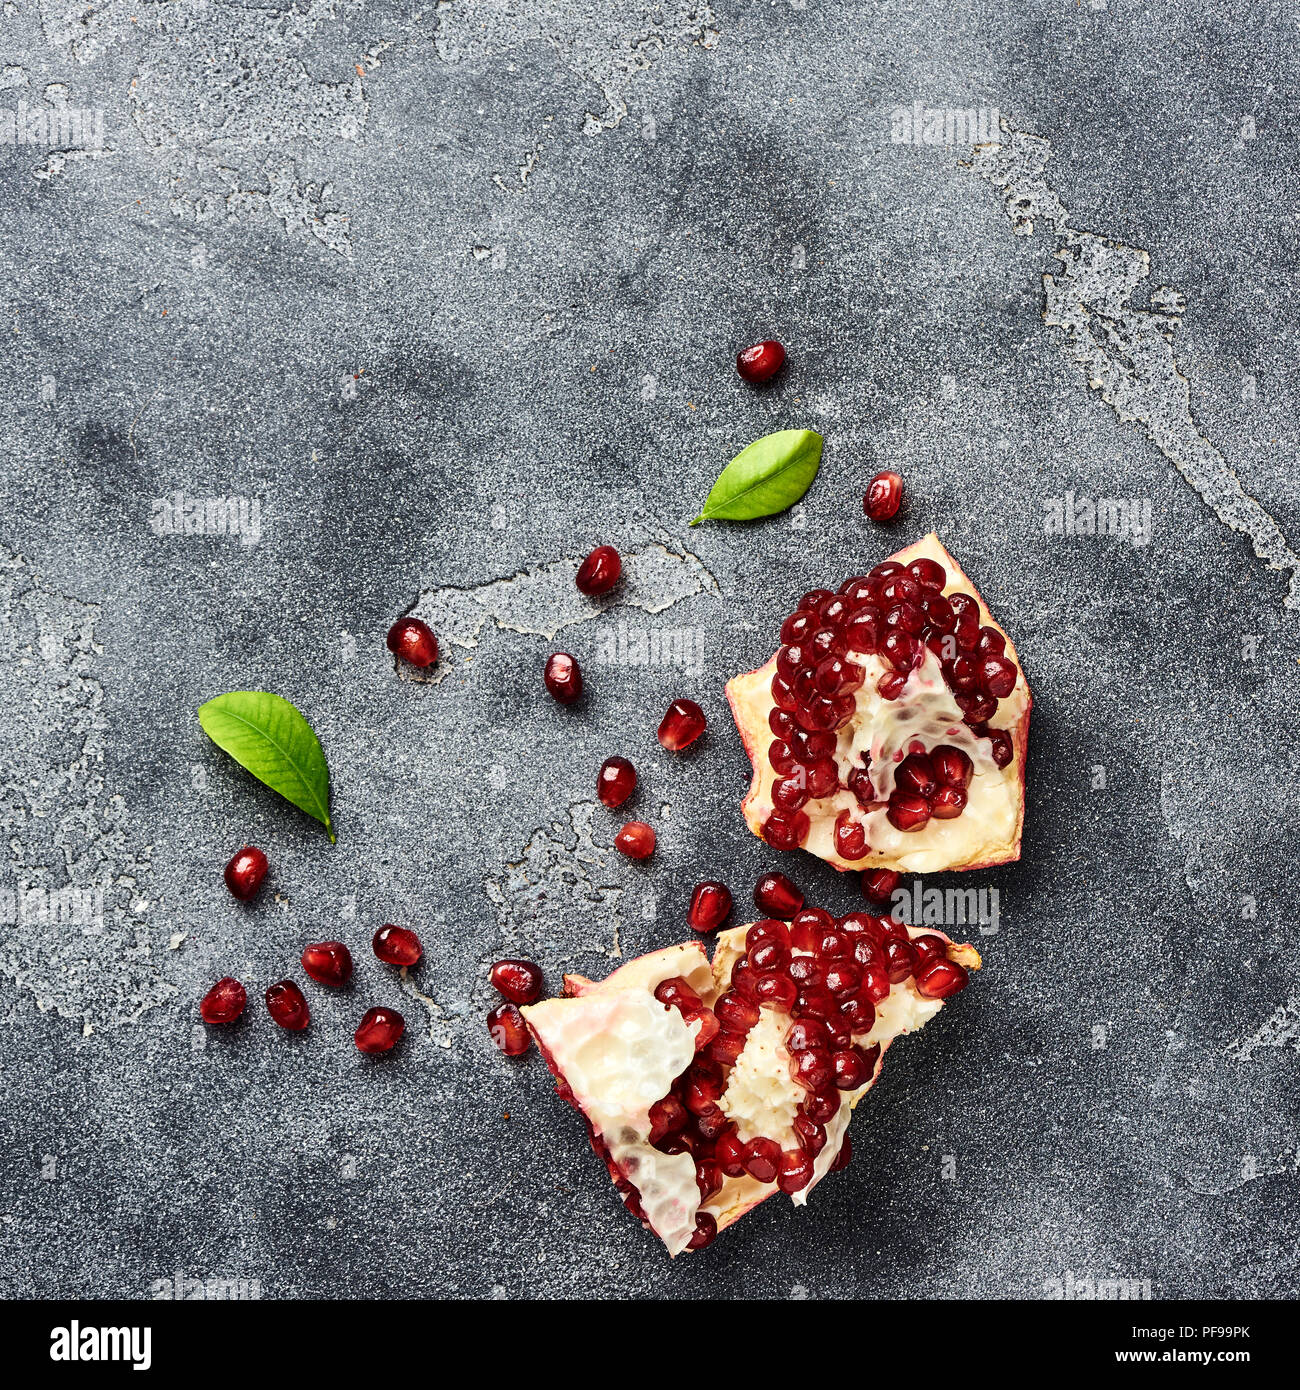 Pomegranate fruit with seeds on gray background with copy space. Top view. - Stock Image